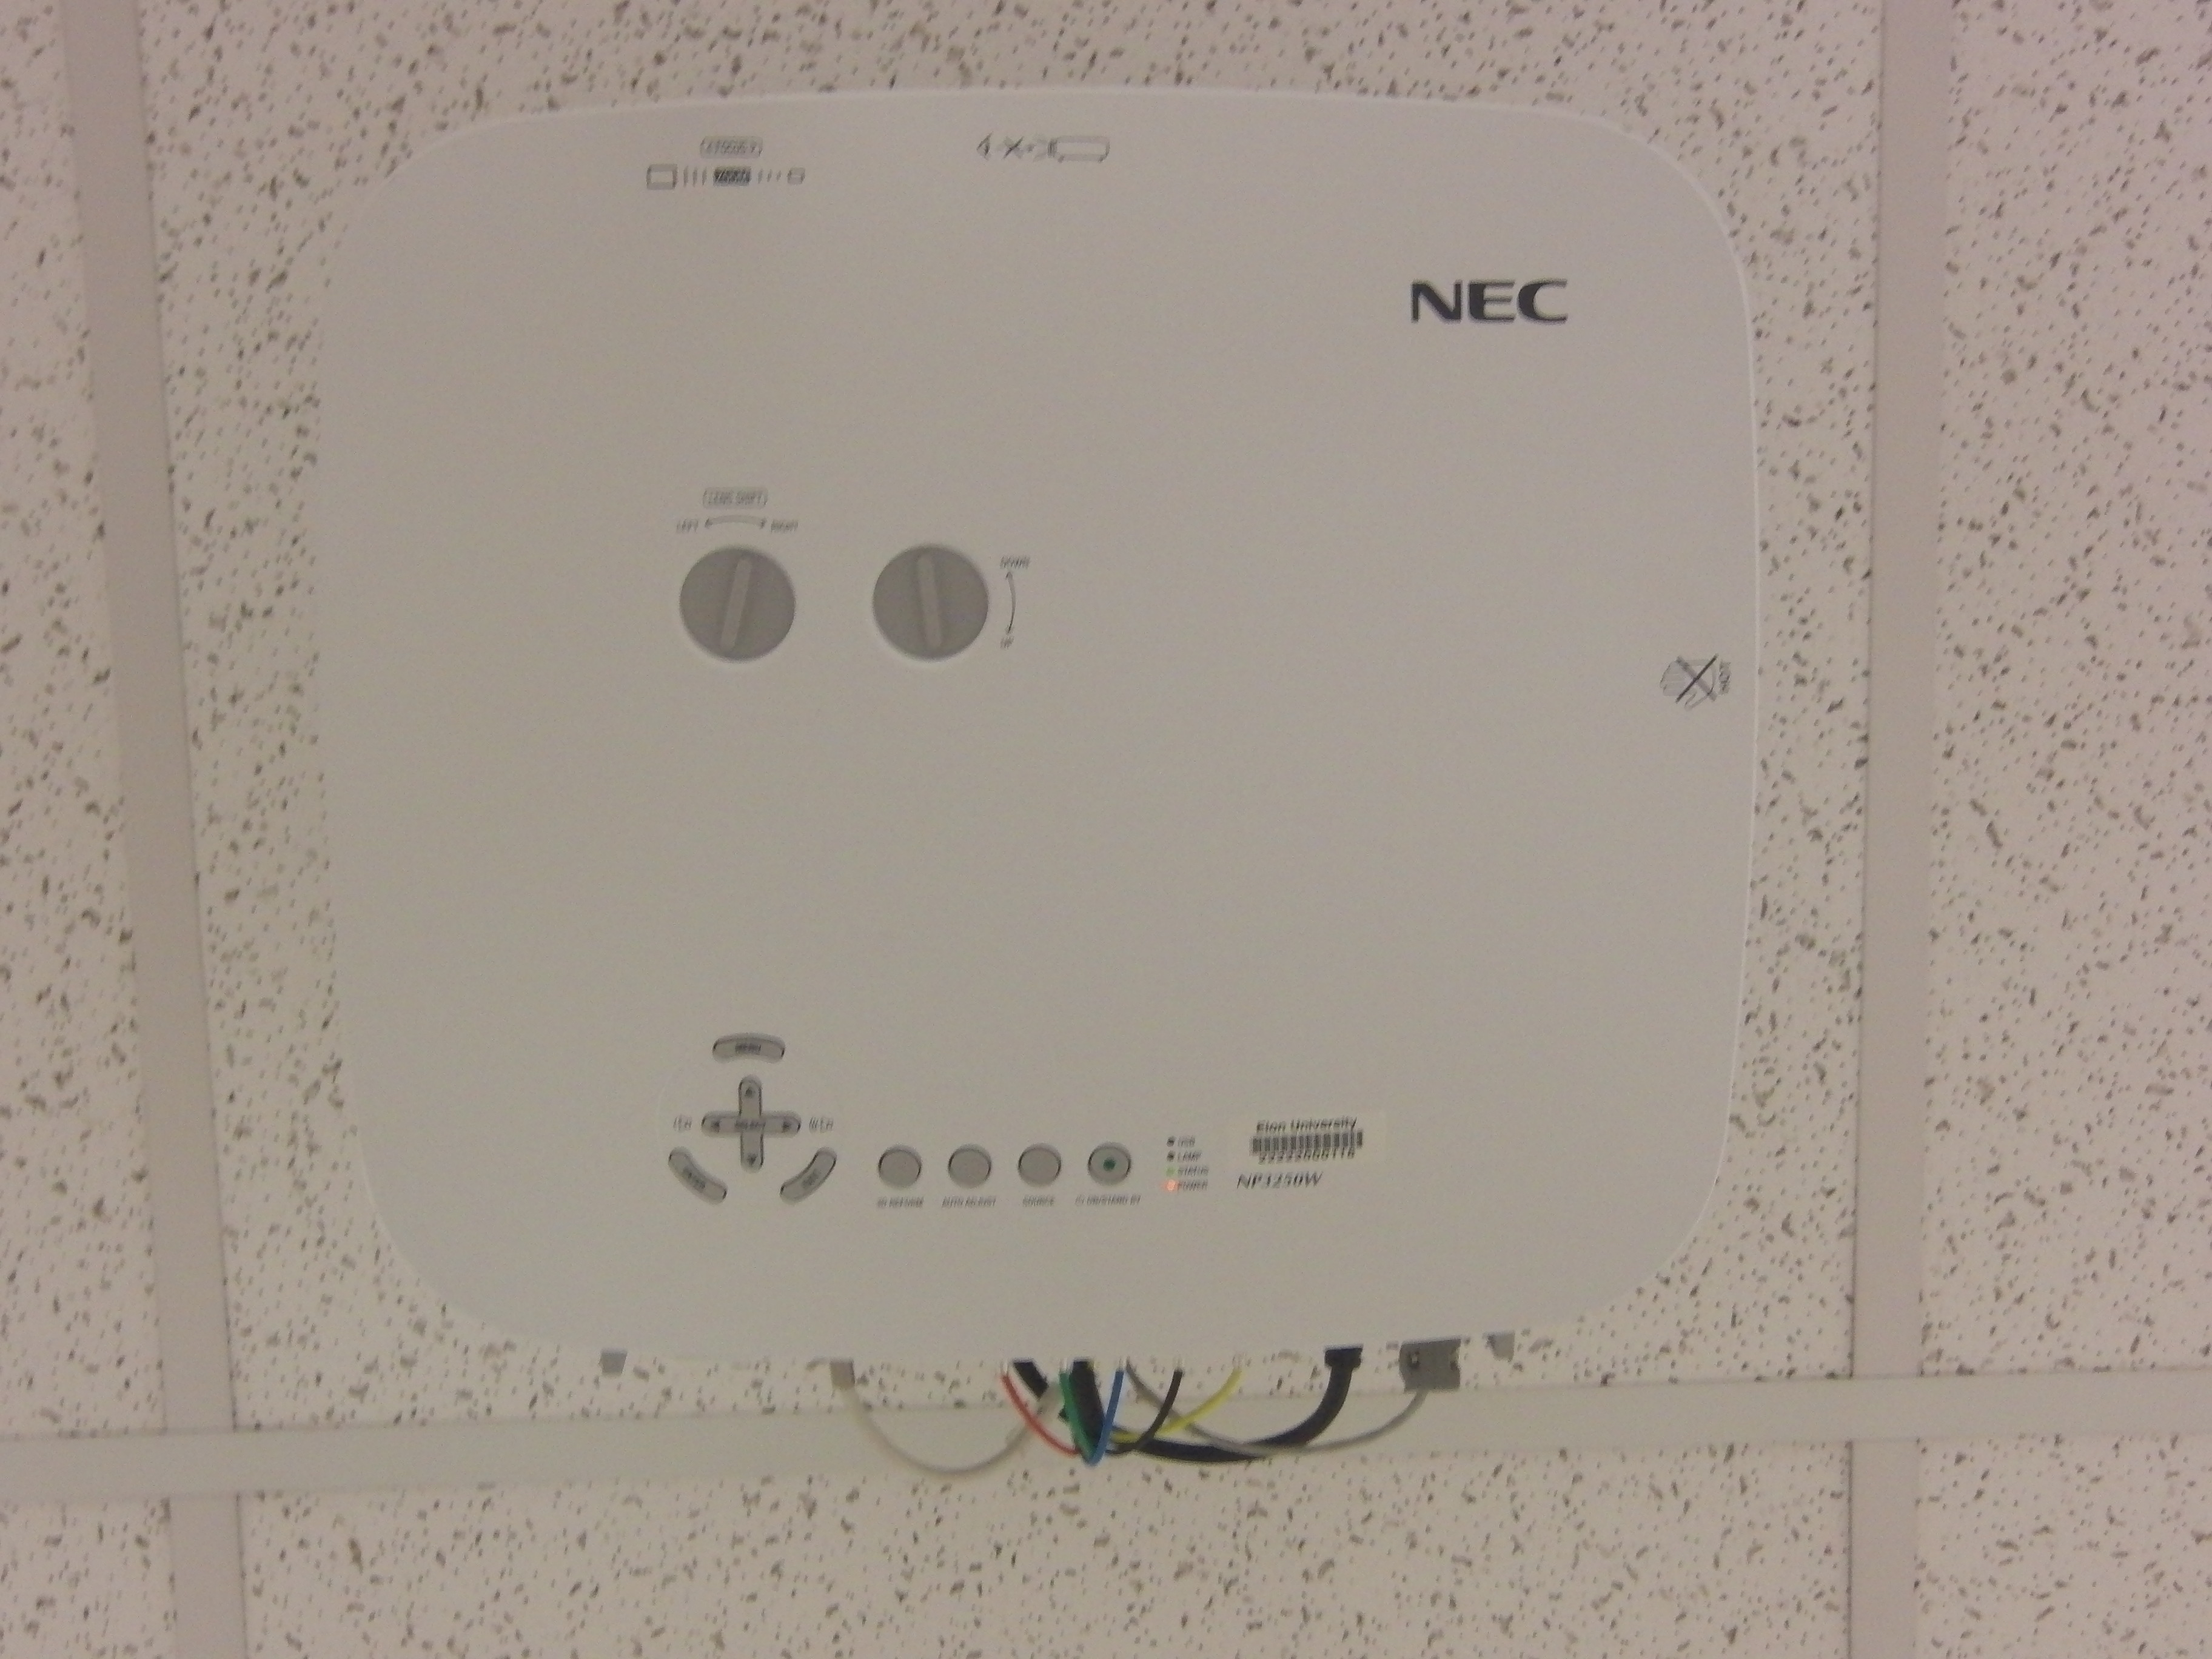 Photo of the ceiling mounted projector